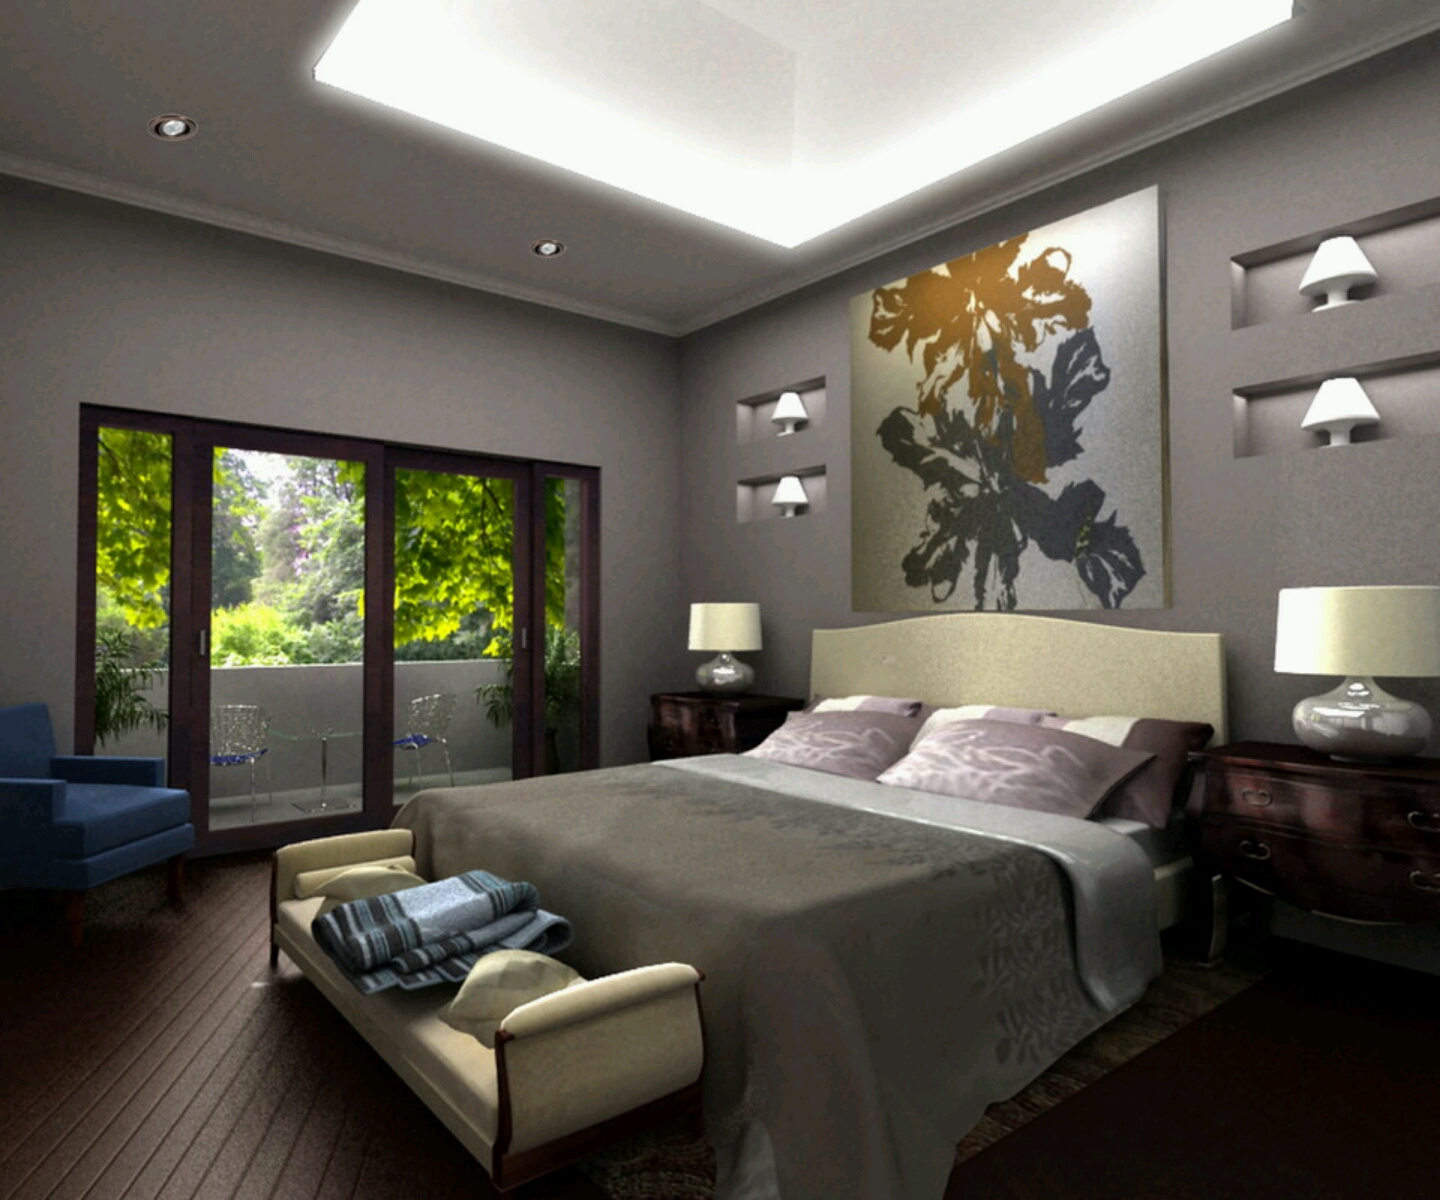 Modern bed designs beautiful bedrooms designs ideas for Interior home design bedroom ideas